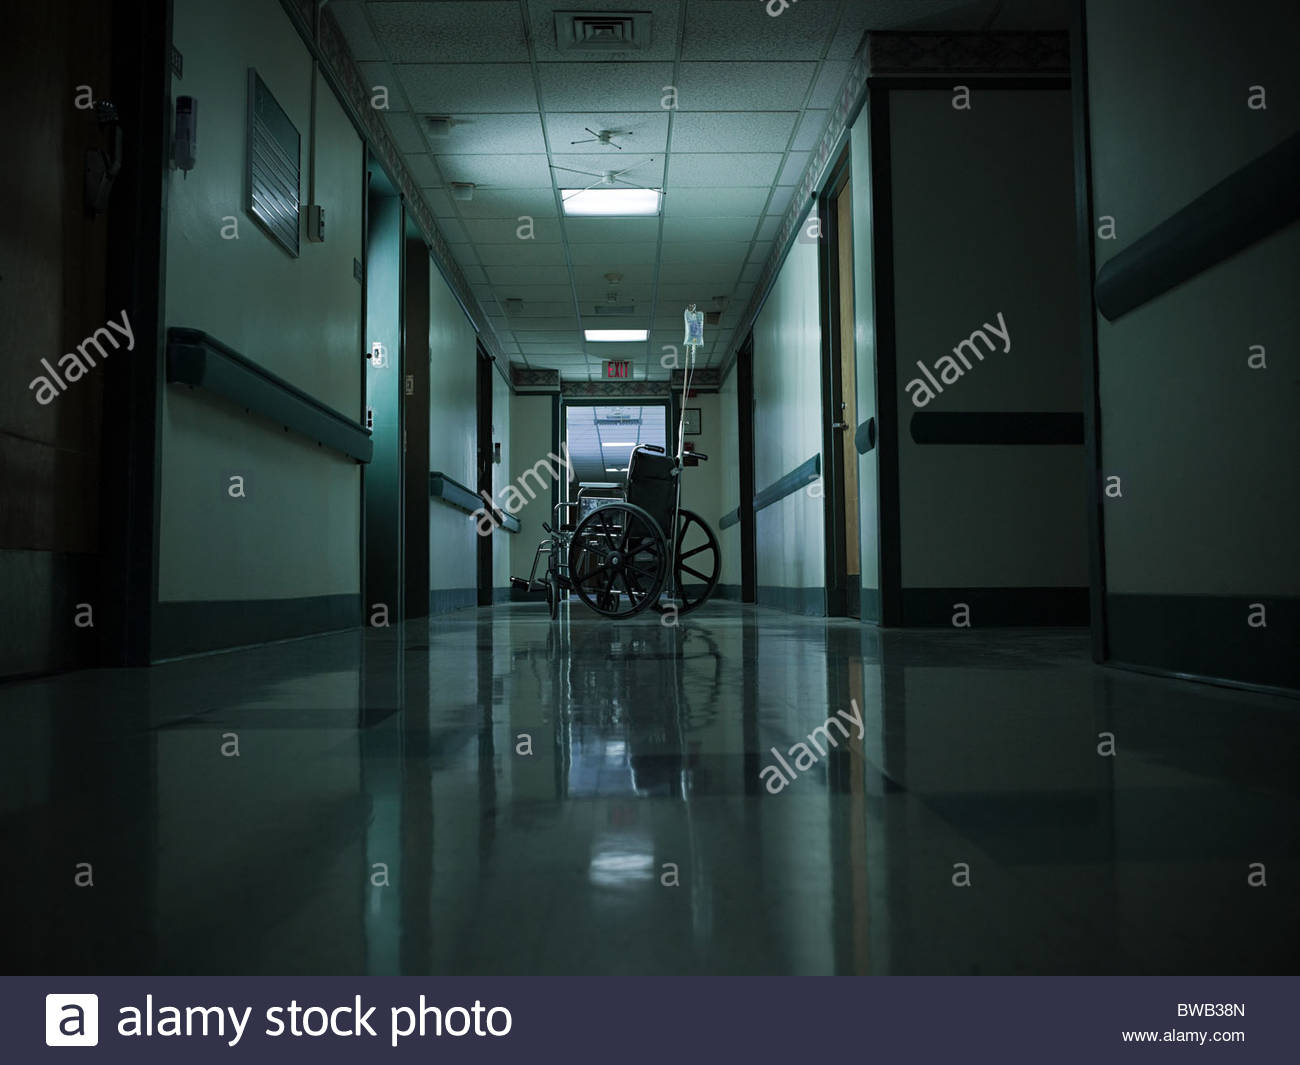 Empty wheelchair and intravenous drip in hospital corridor - Stock Image